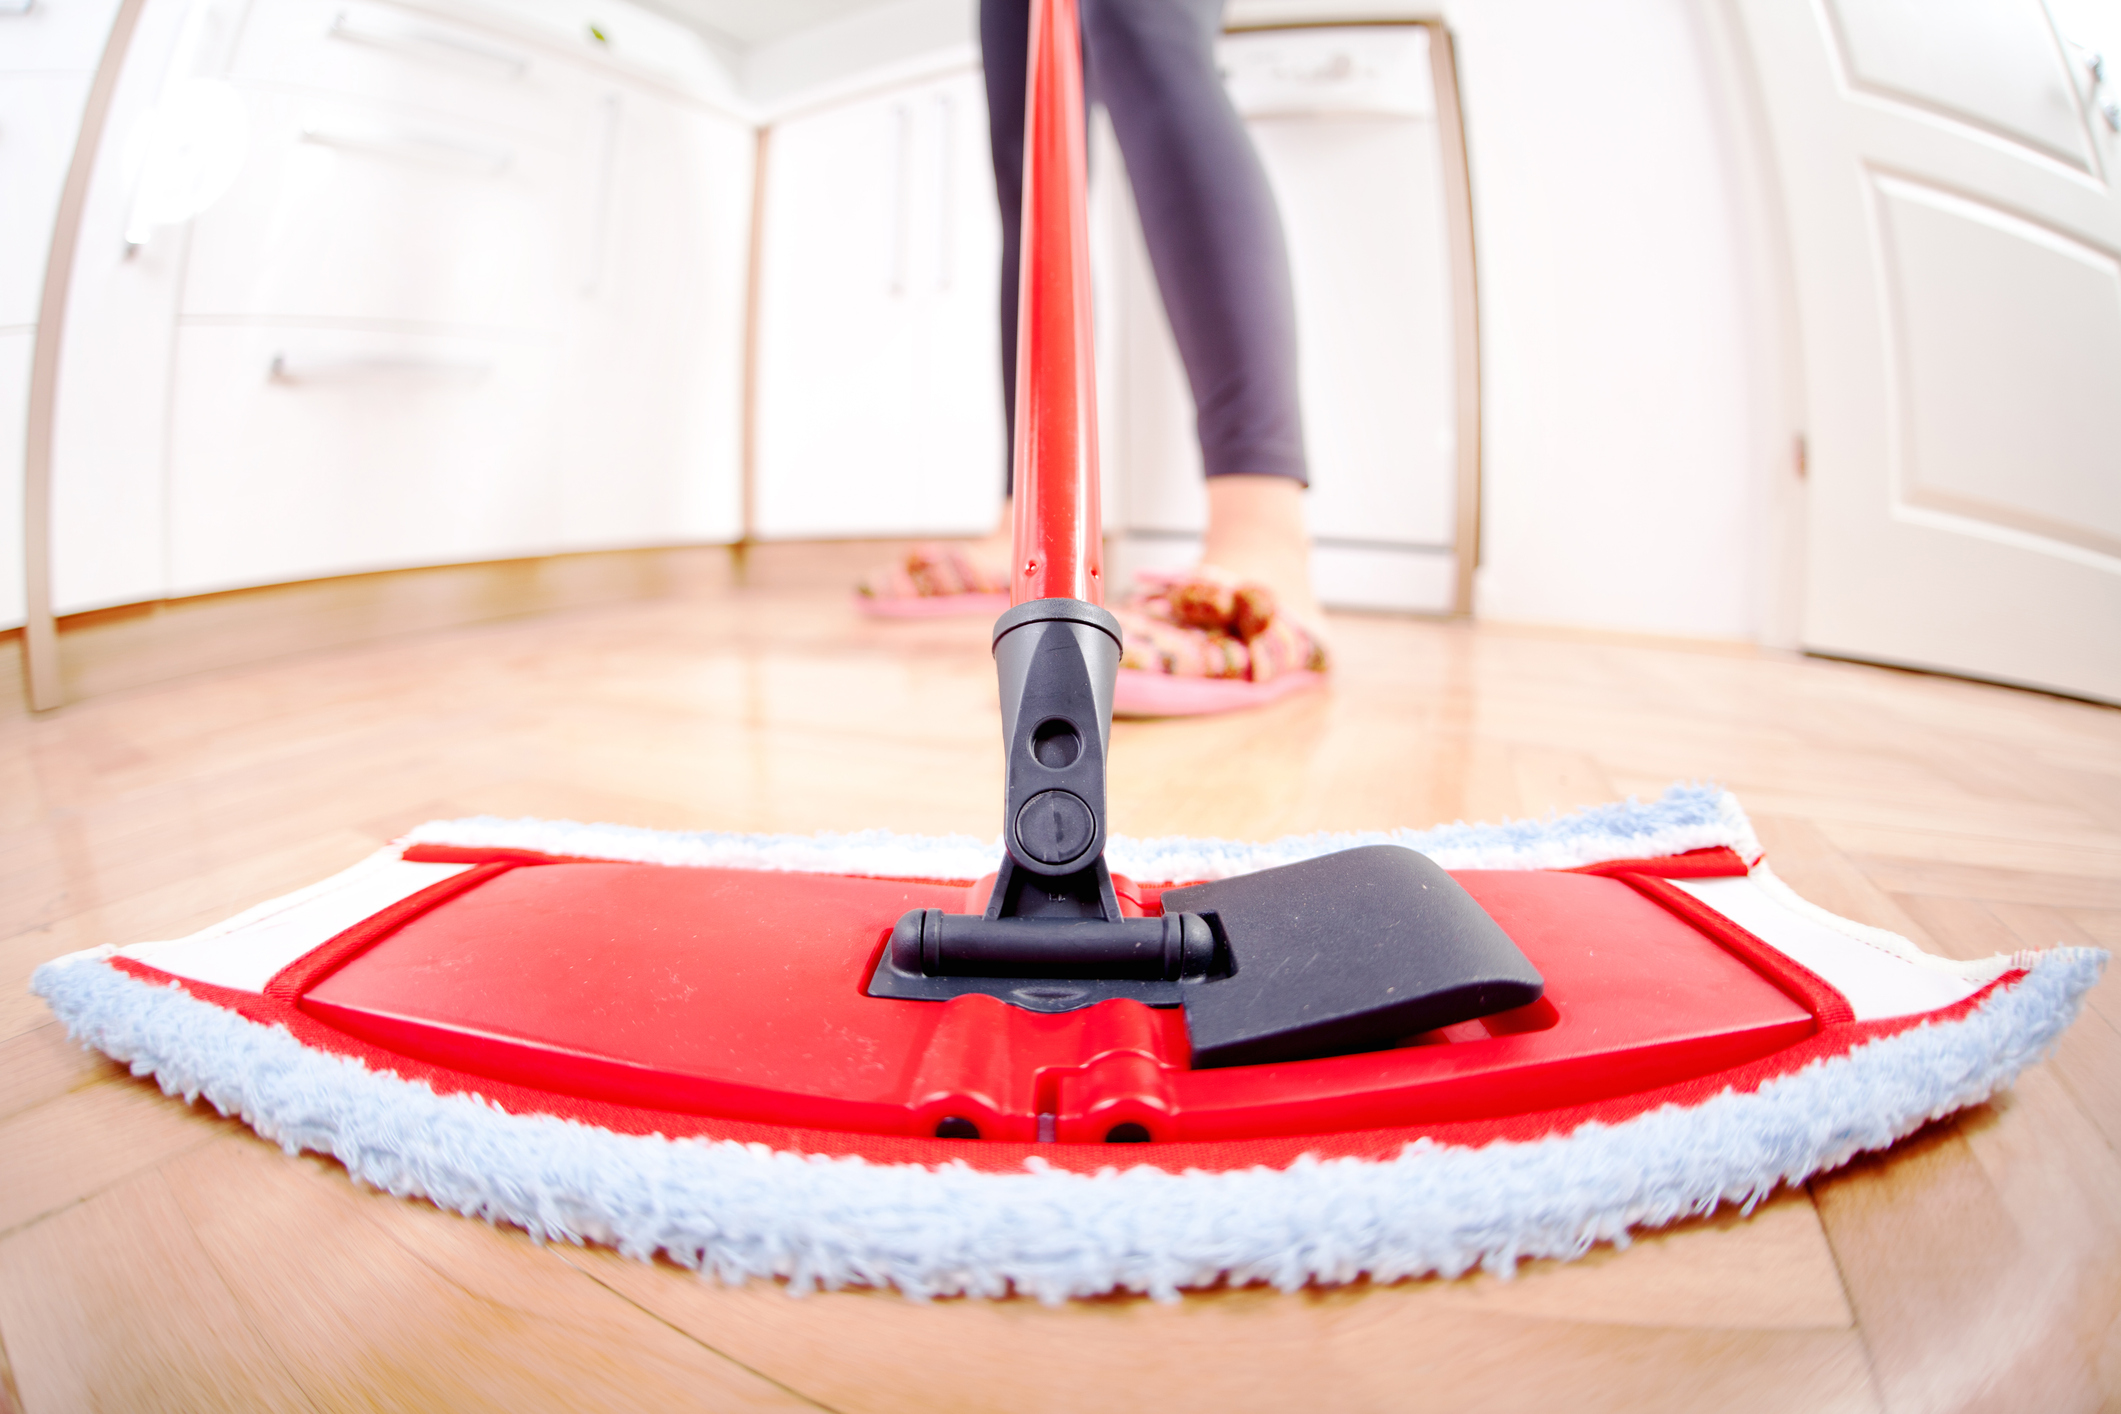 Baking soda cleaning tips: 25 hacks for using bicarbonate of